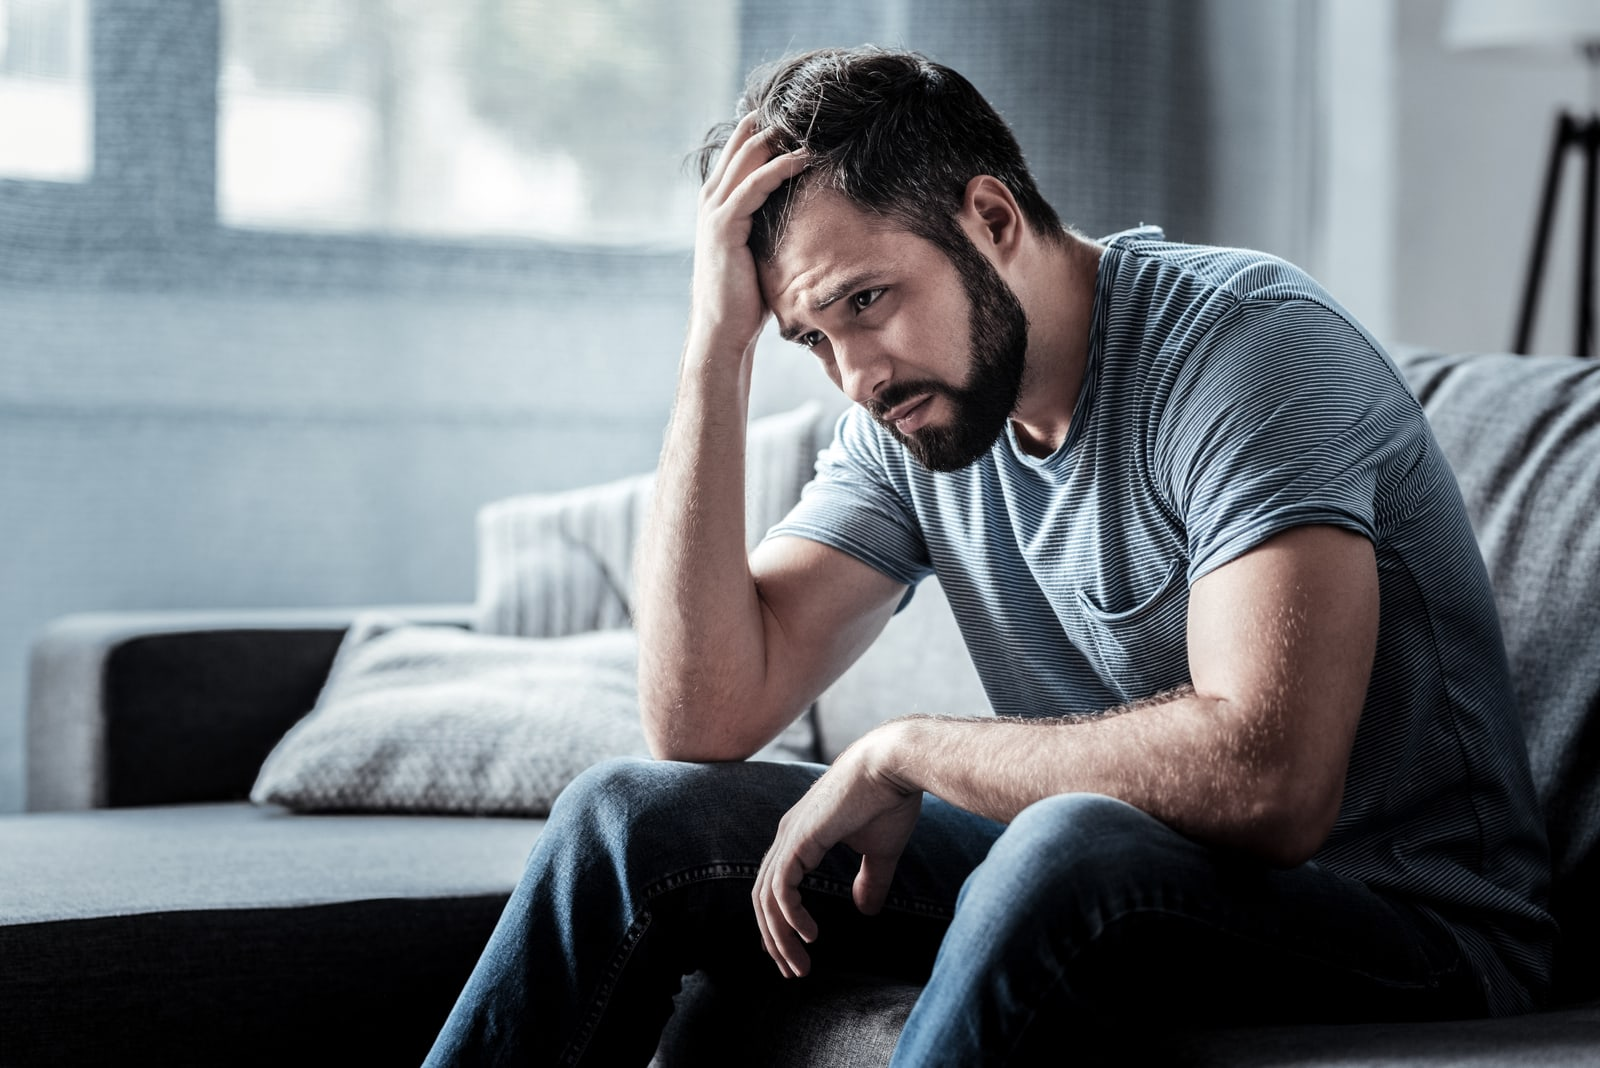 a disappointed man sits on the couch